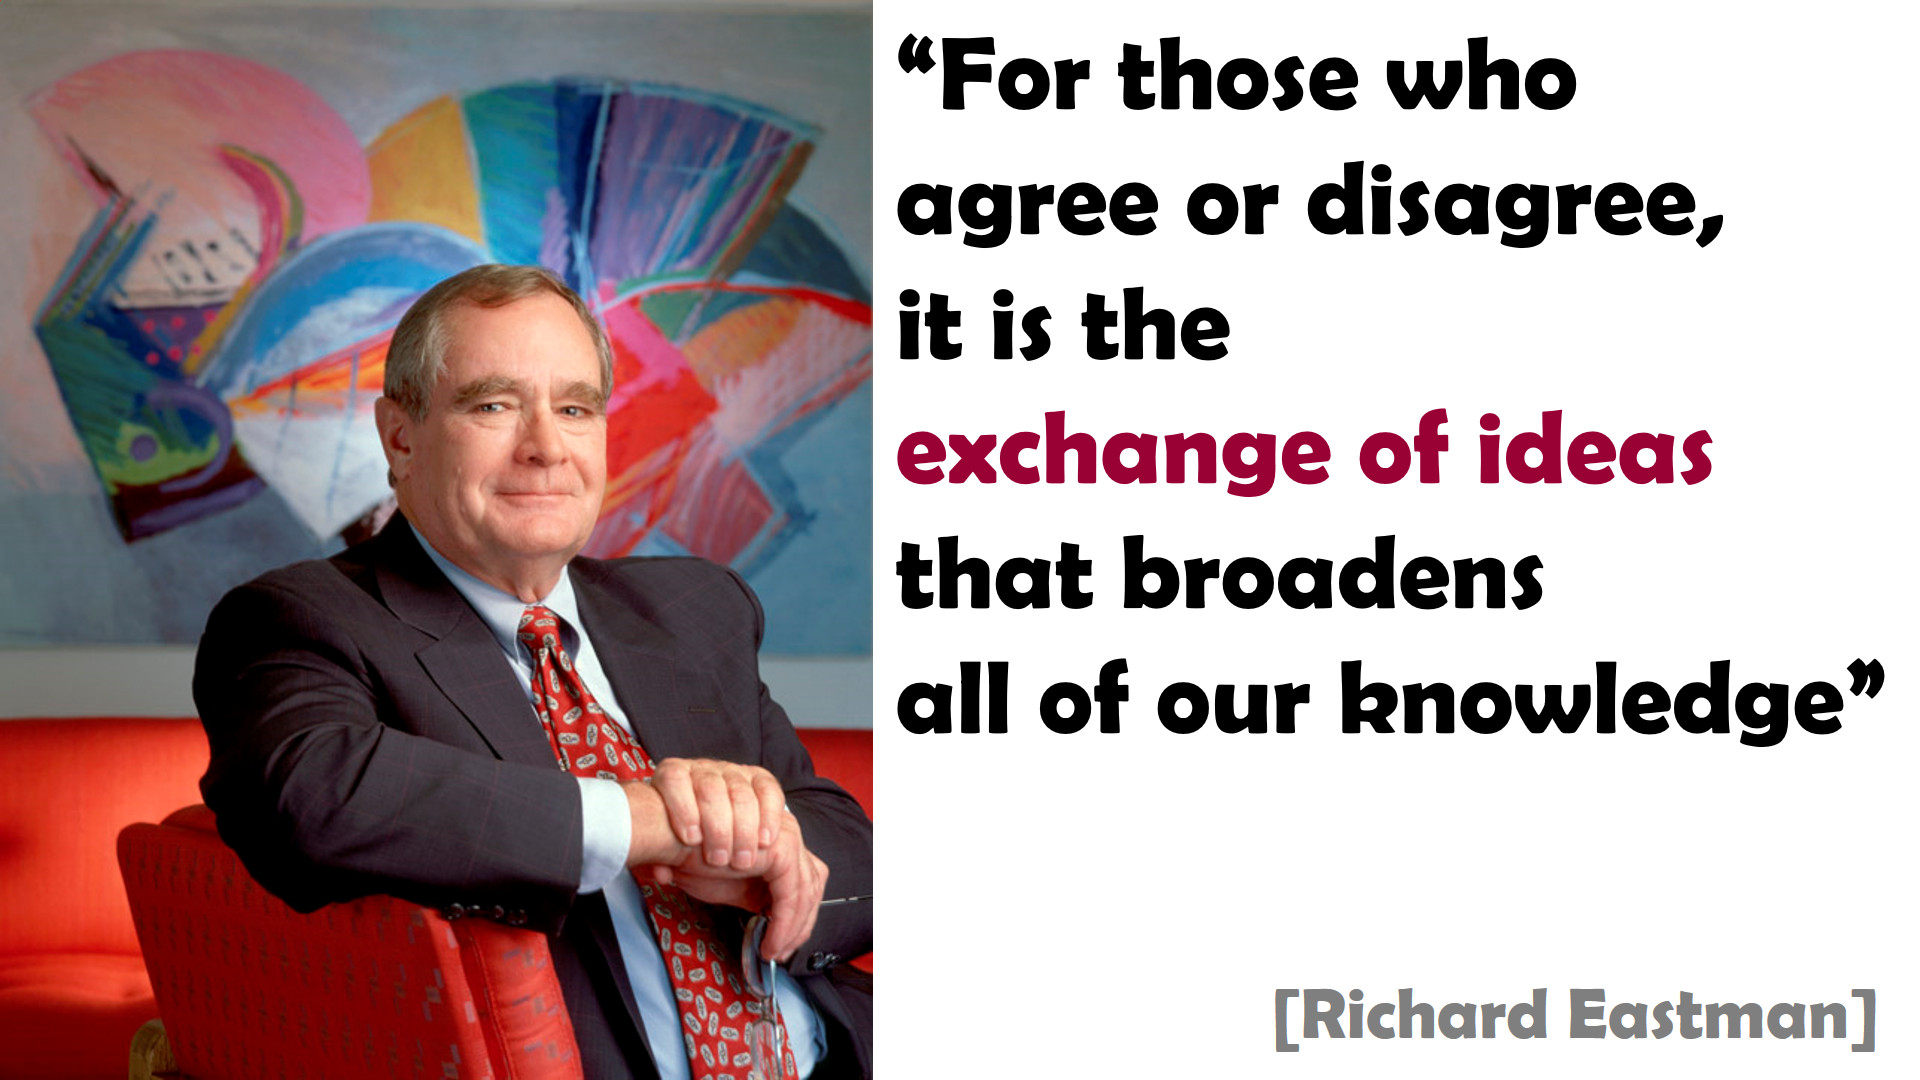 """For those who agree or disagree, it is the exchange of ideas that broadens all of our knowledge"" [Richard Eastman]"